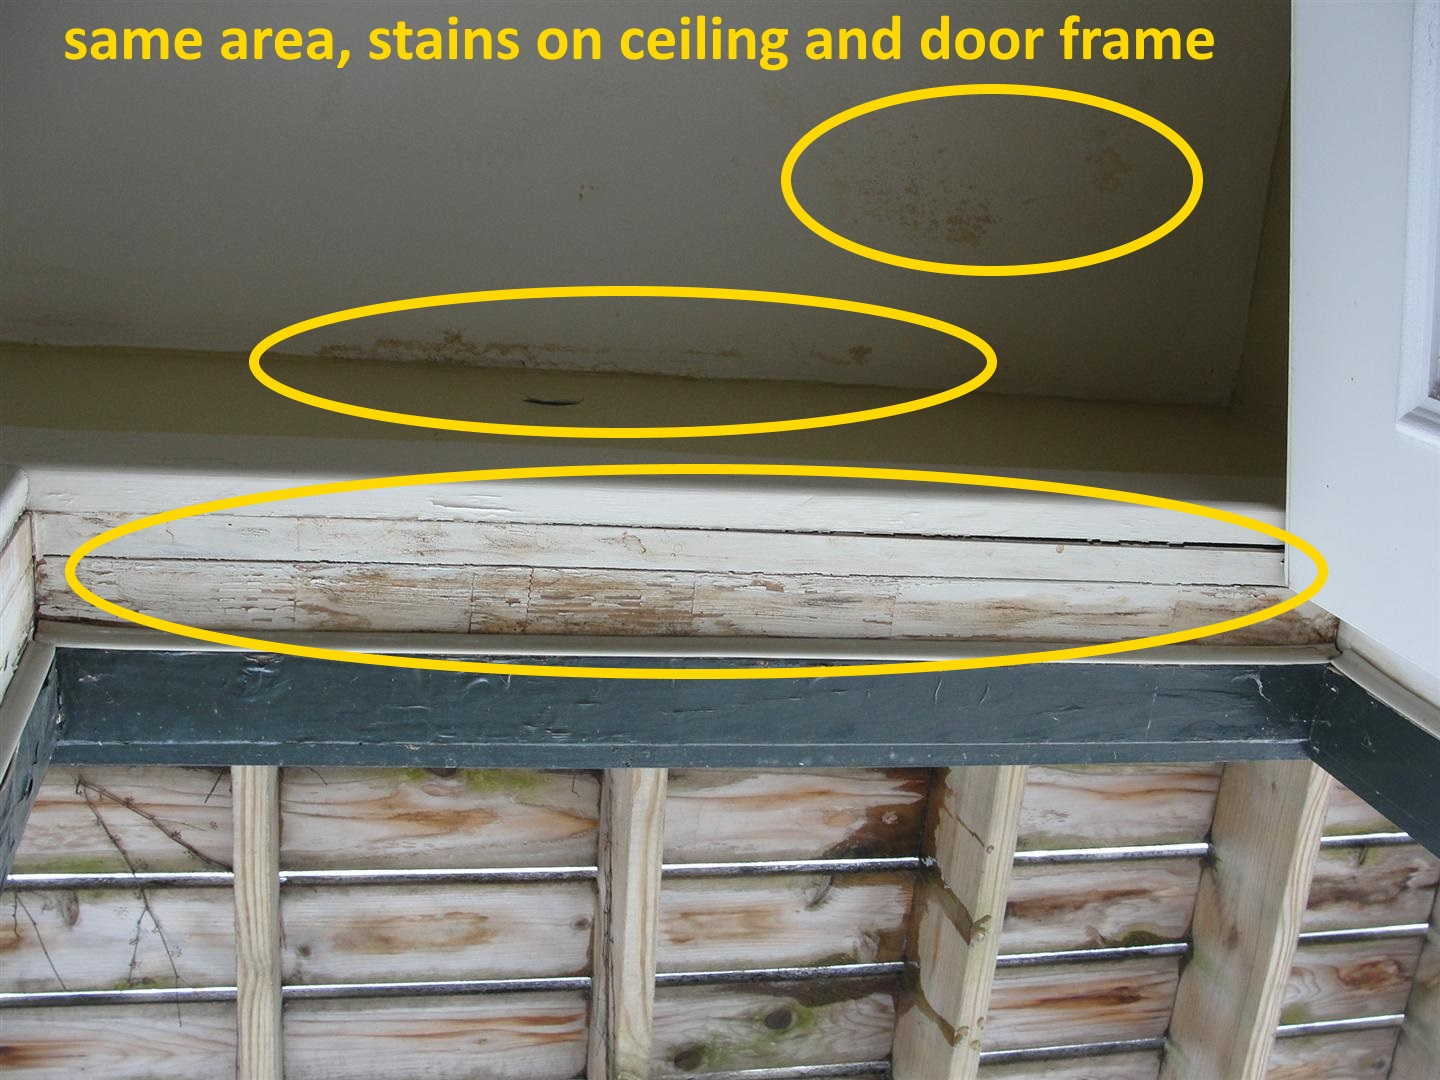 Skipping Home Inspection For A Condo Think Again Based On These Overheated Electrical Wiring Exterior Stains At Ceiling